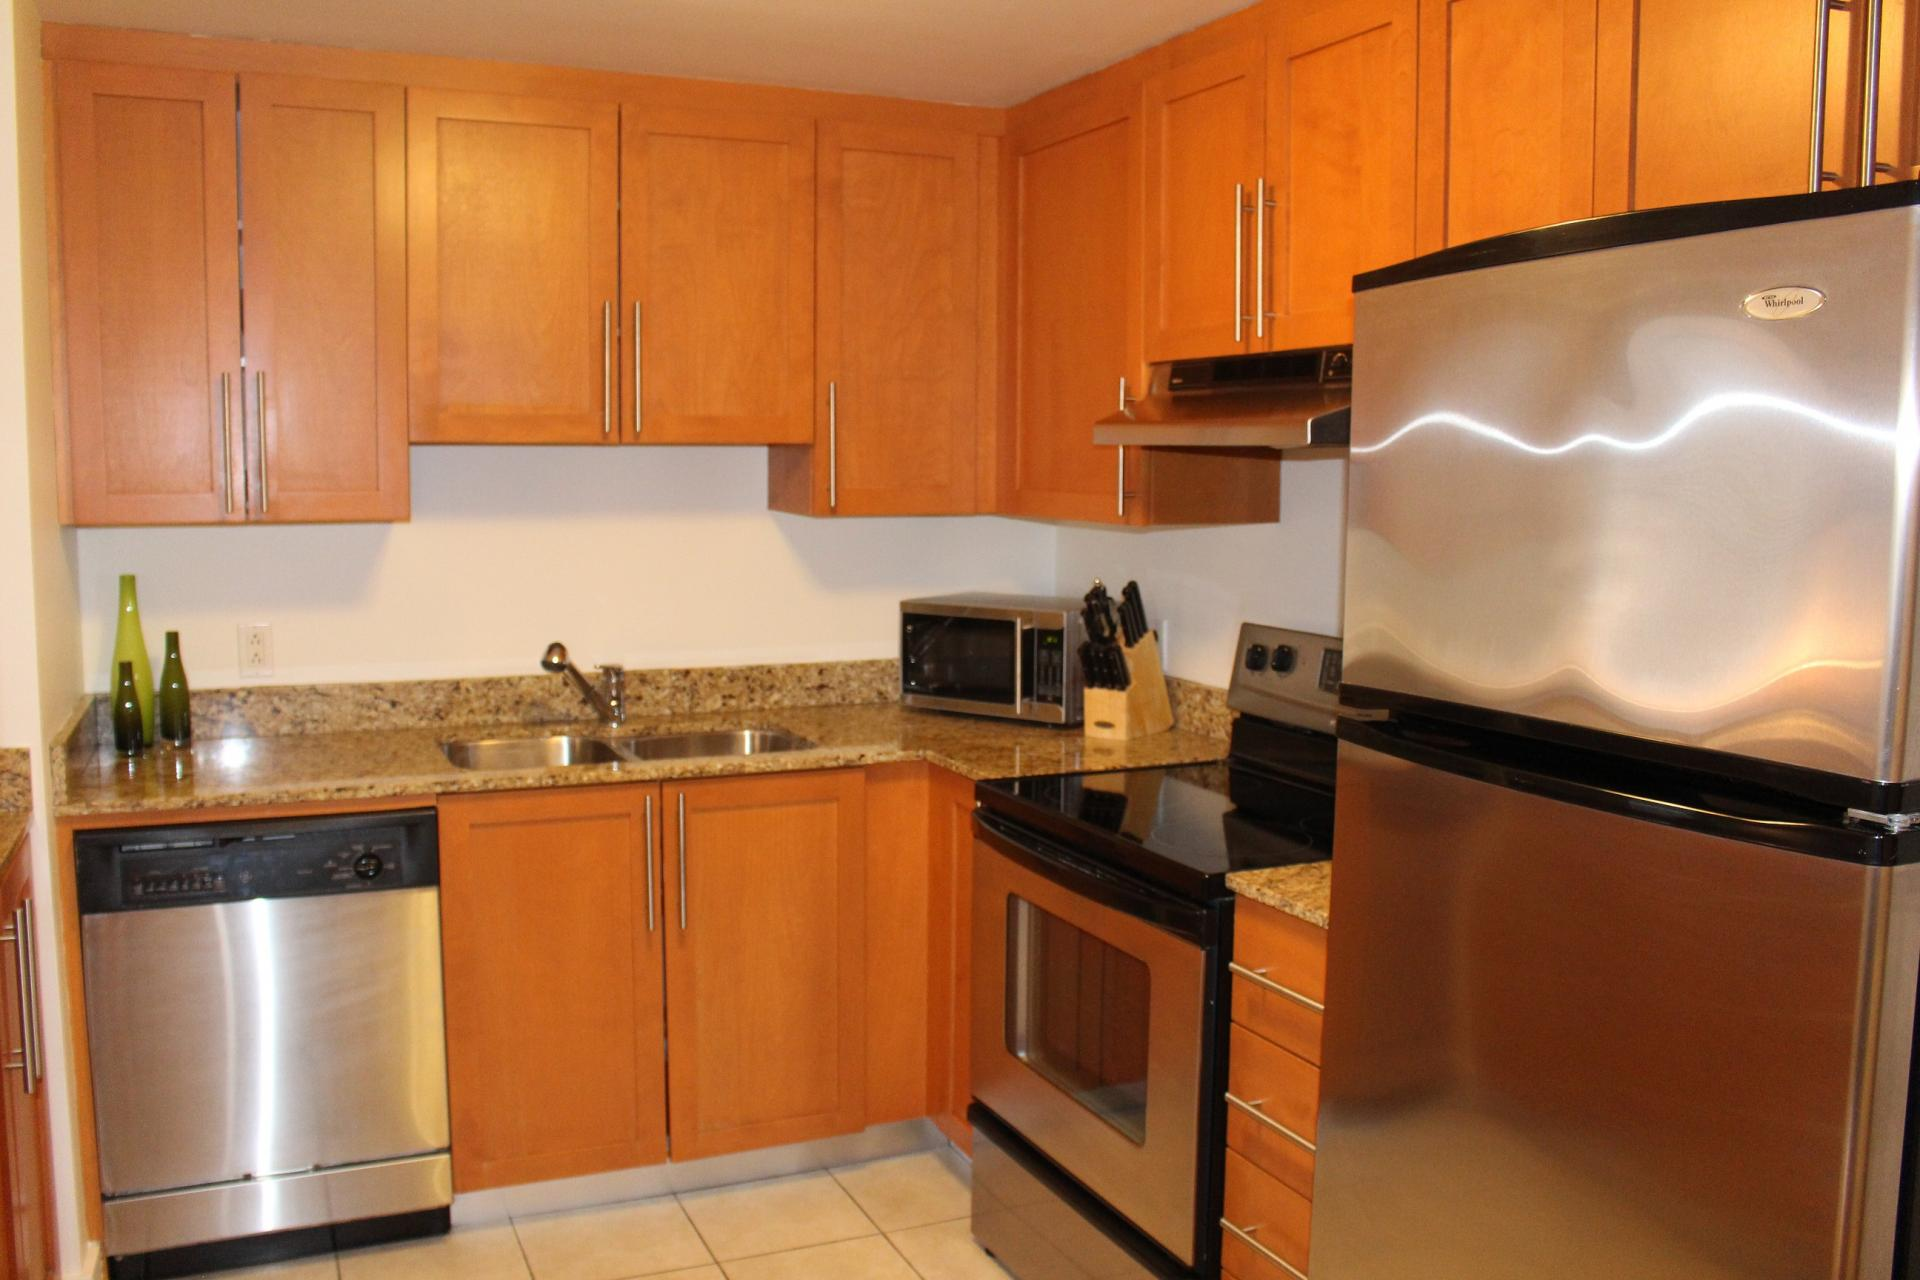 Kitchen at The Mosaique Apartments, Centre, Montreal